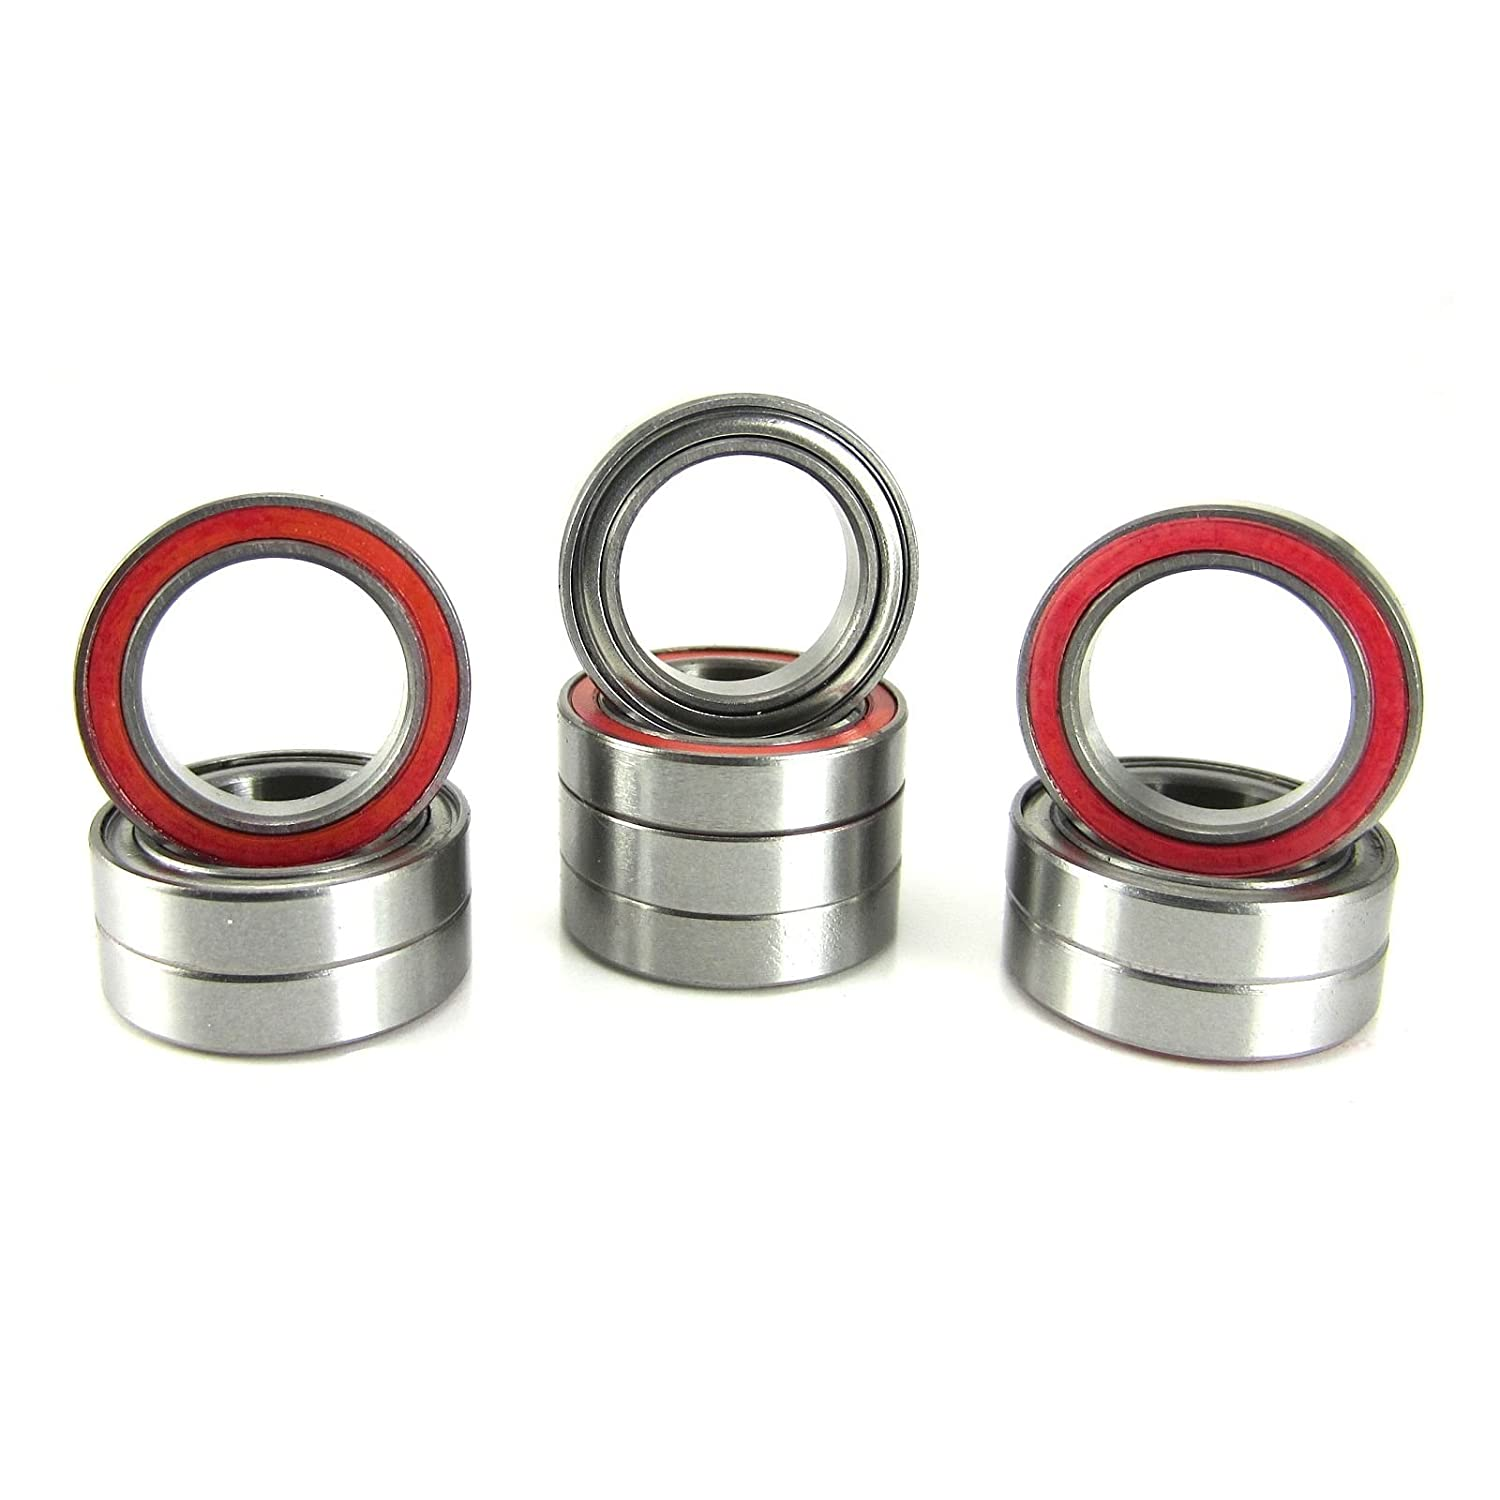 12x18x4mm Precision Ball Bearings ABEC 3 Hybrid Seals (10) 6701-RZ-RED TRB RC